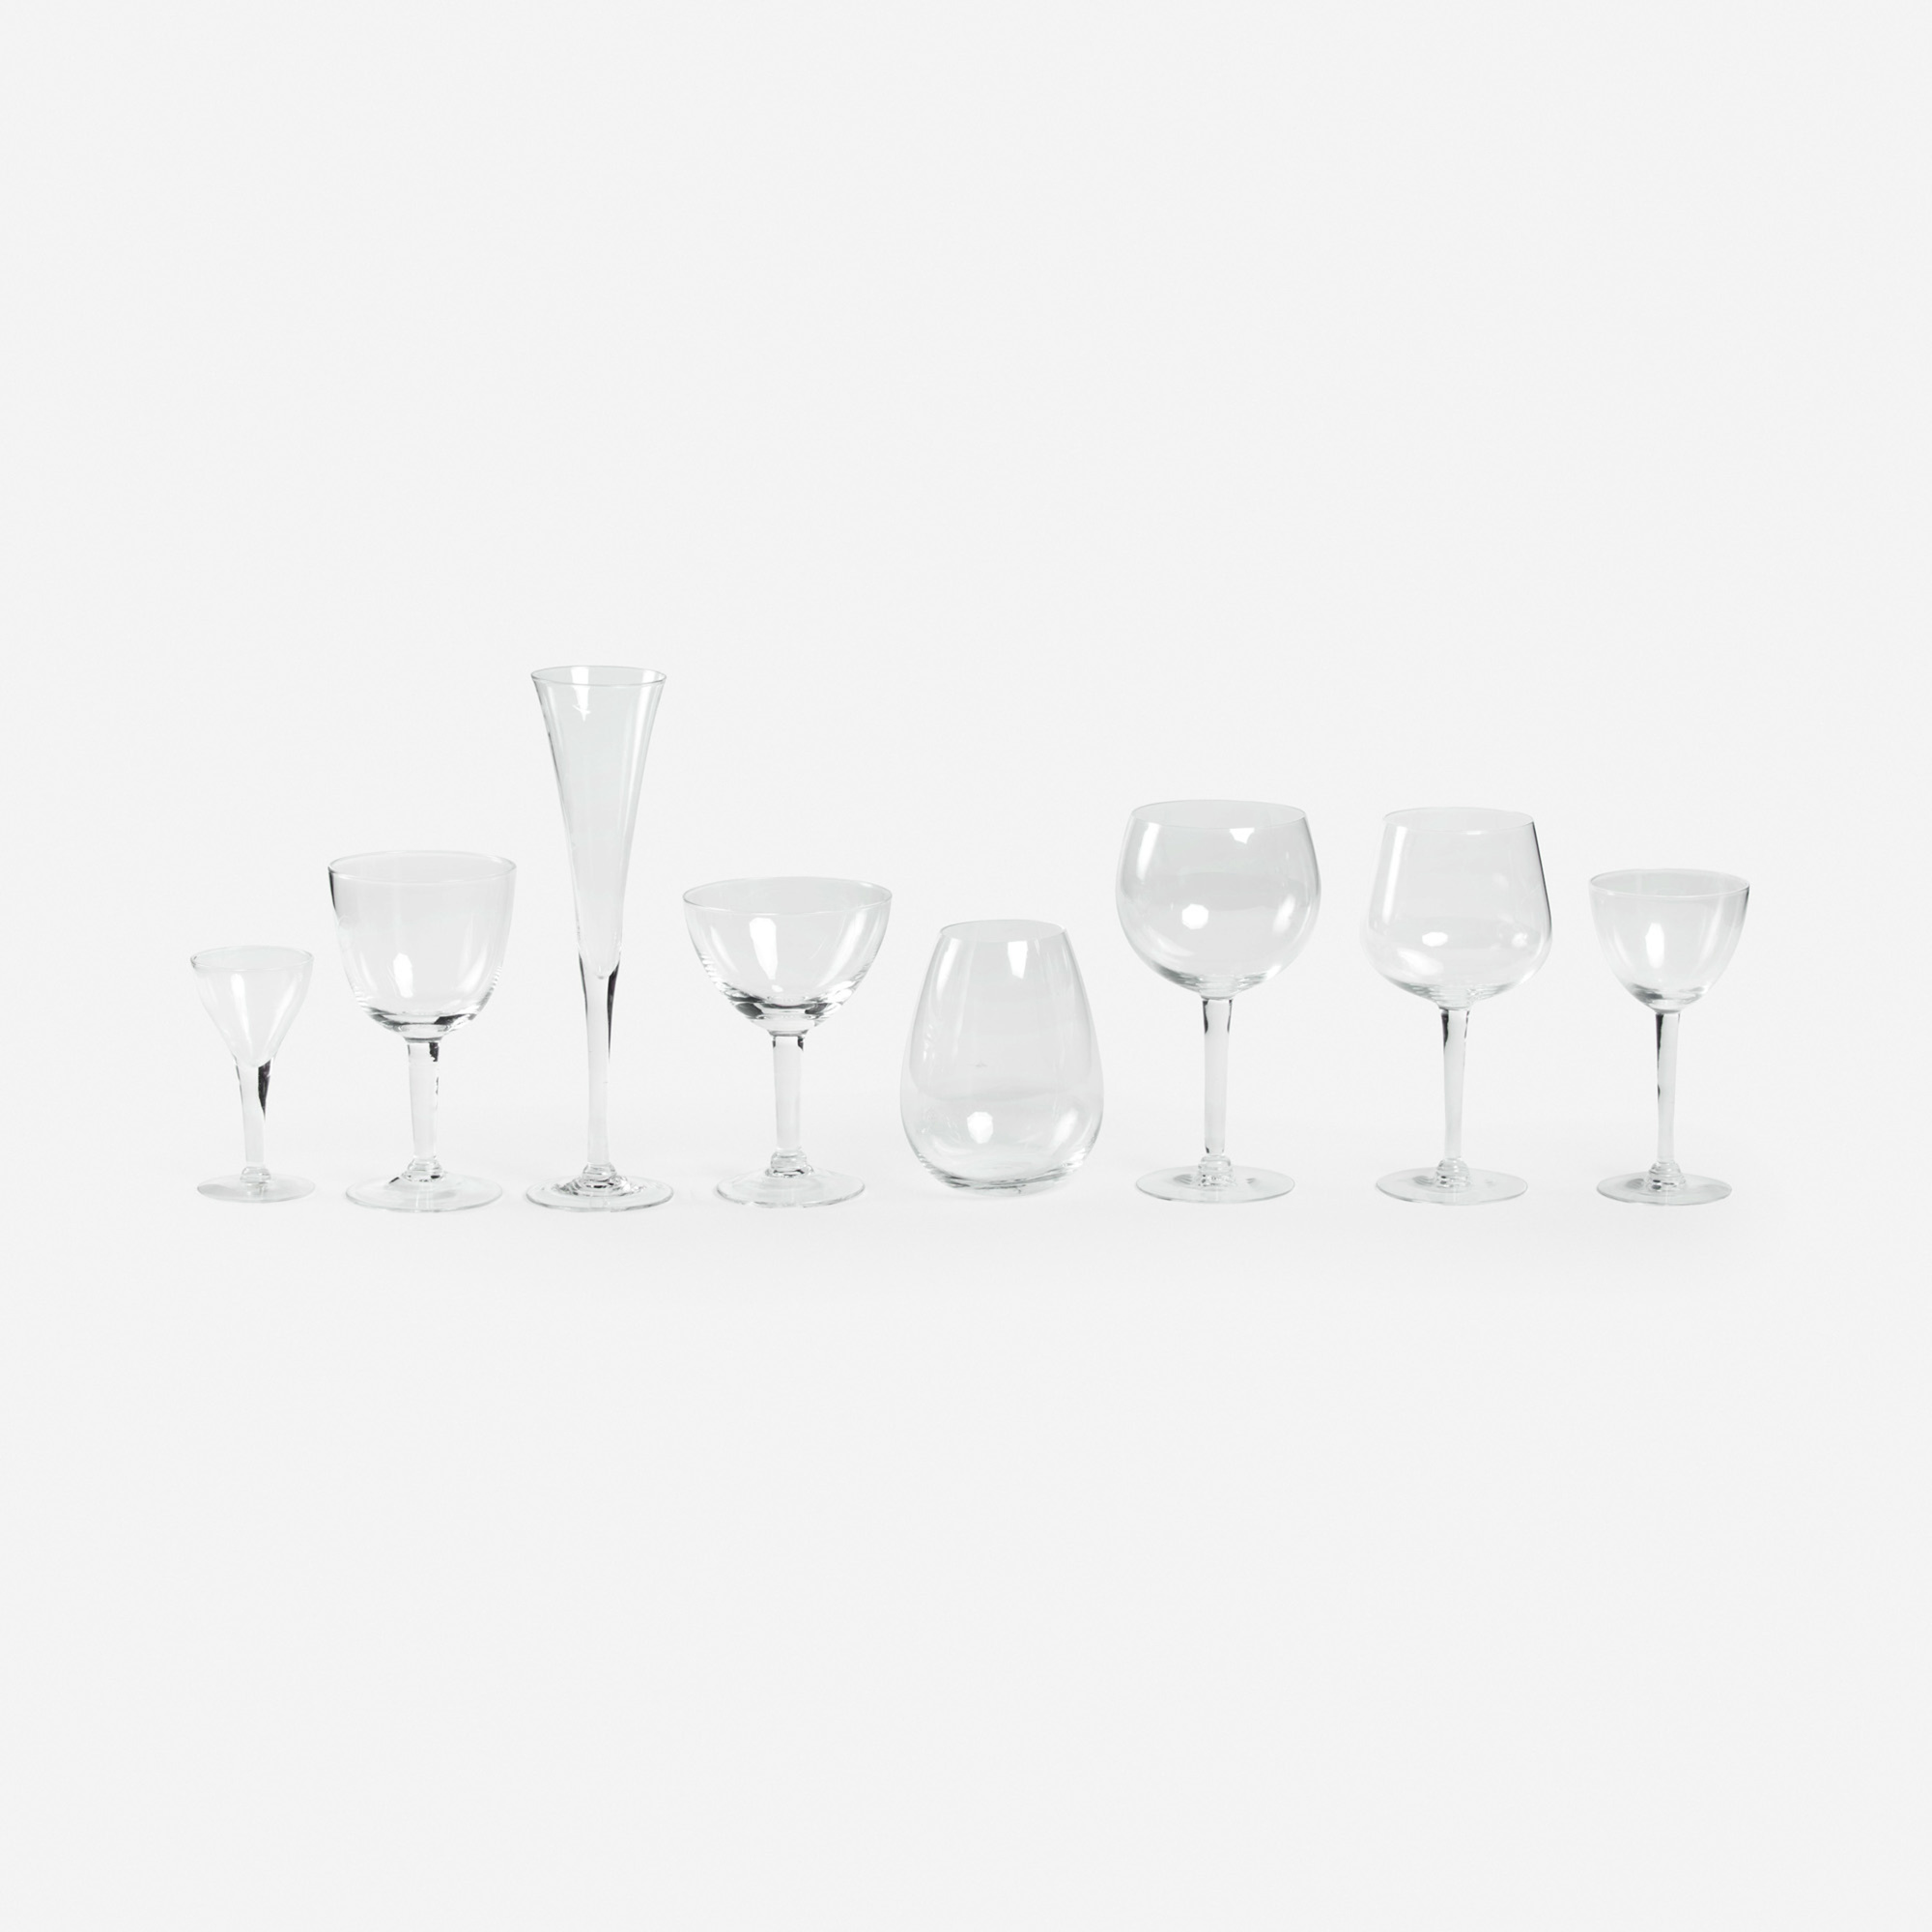 615: Garth and Ada Louise Huxtable / Stemware Collection from The Four Seasons, service for two (1 of 1)